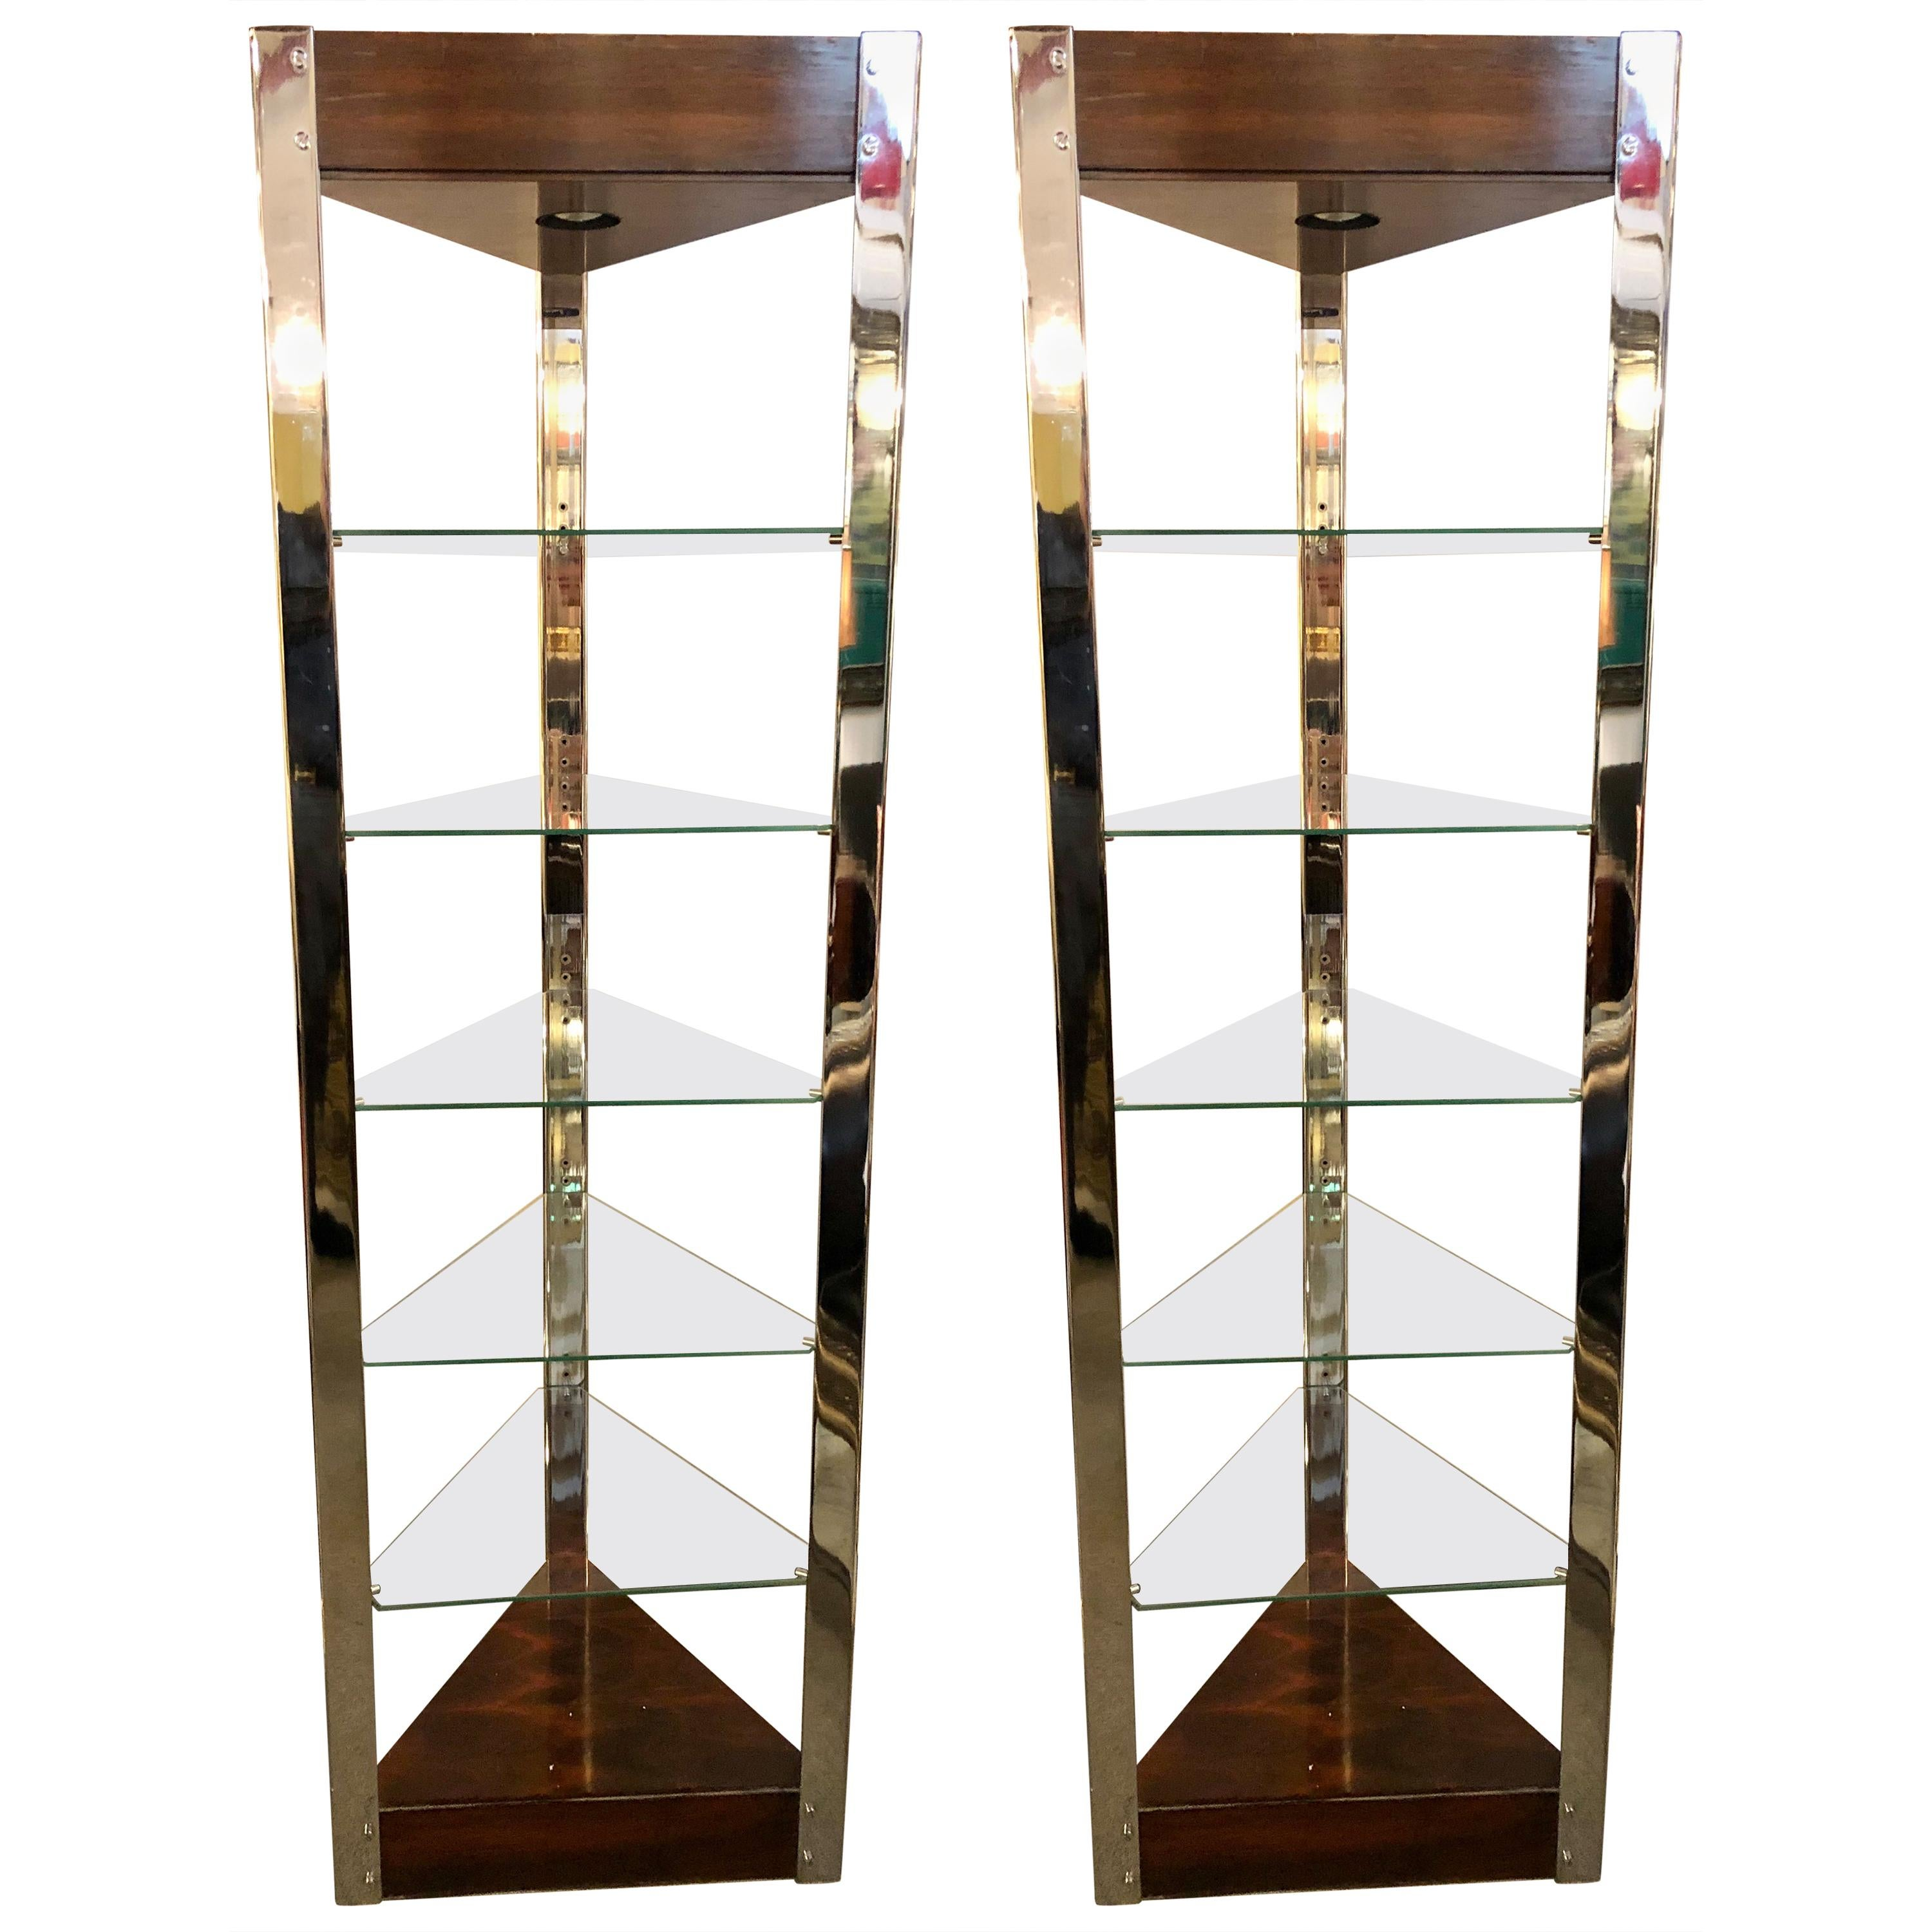 Mid-Century Modern Lighted Étagères or Shelves Rosewood Chrome and Glass, a Pair